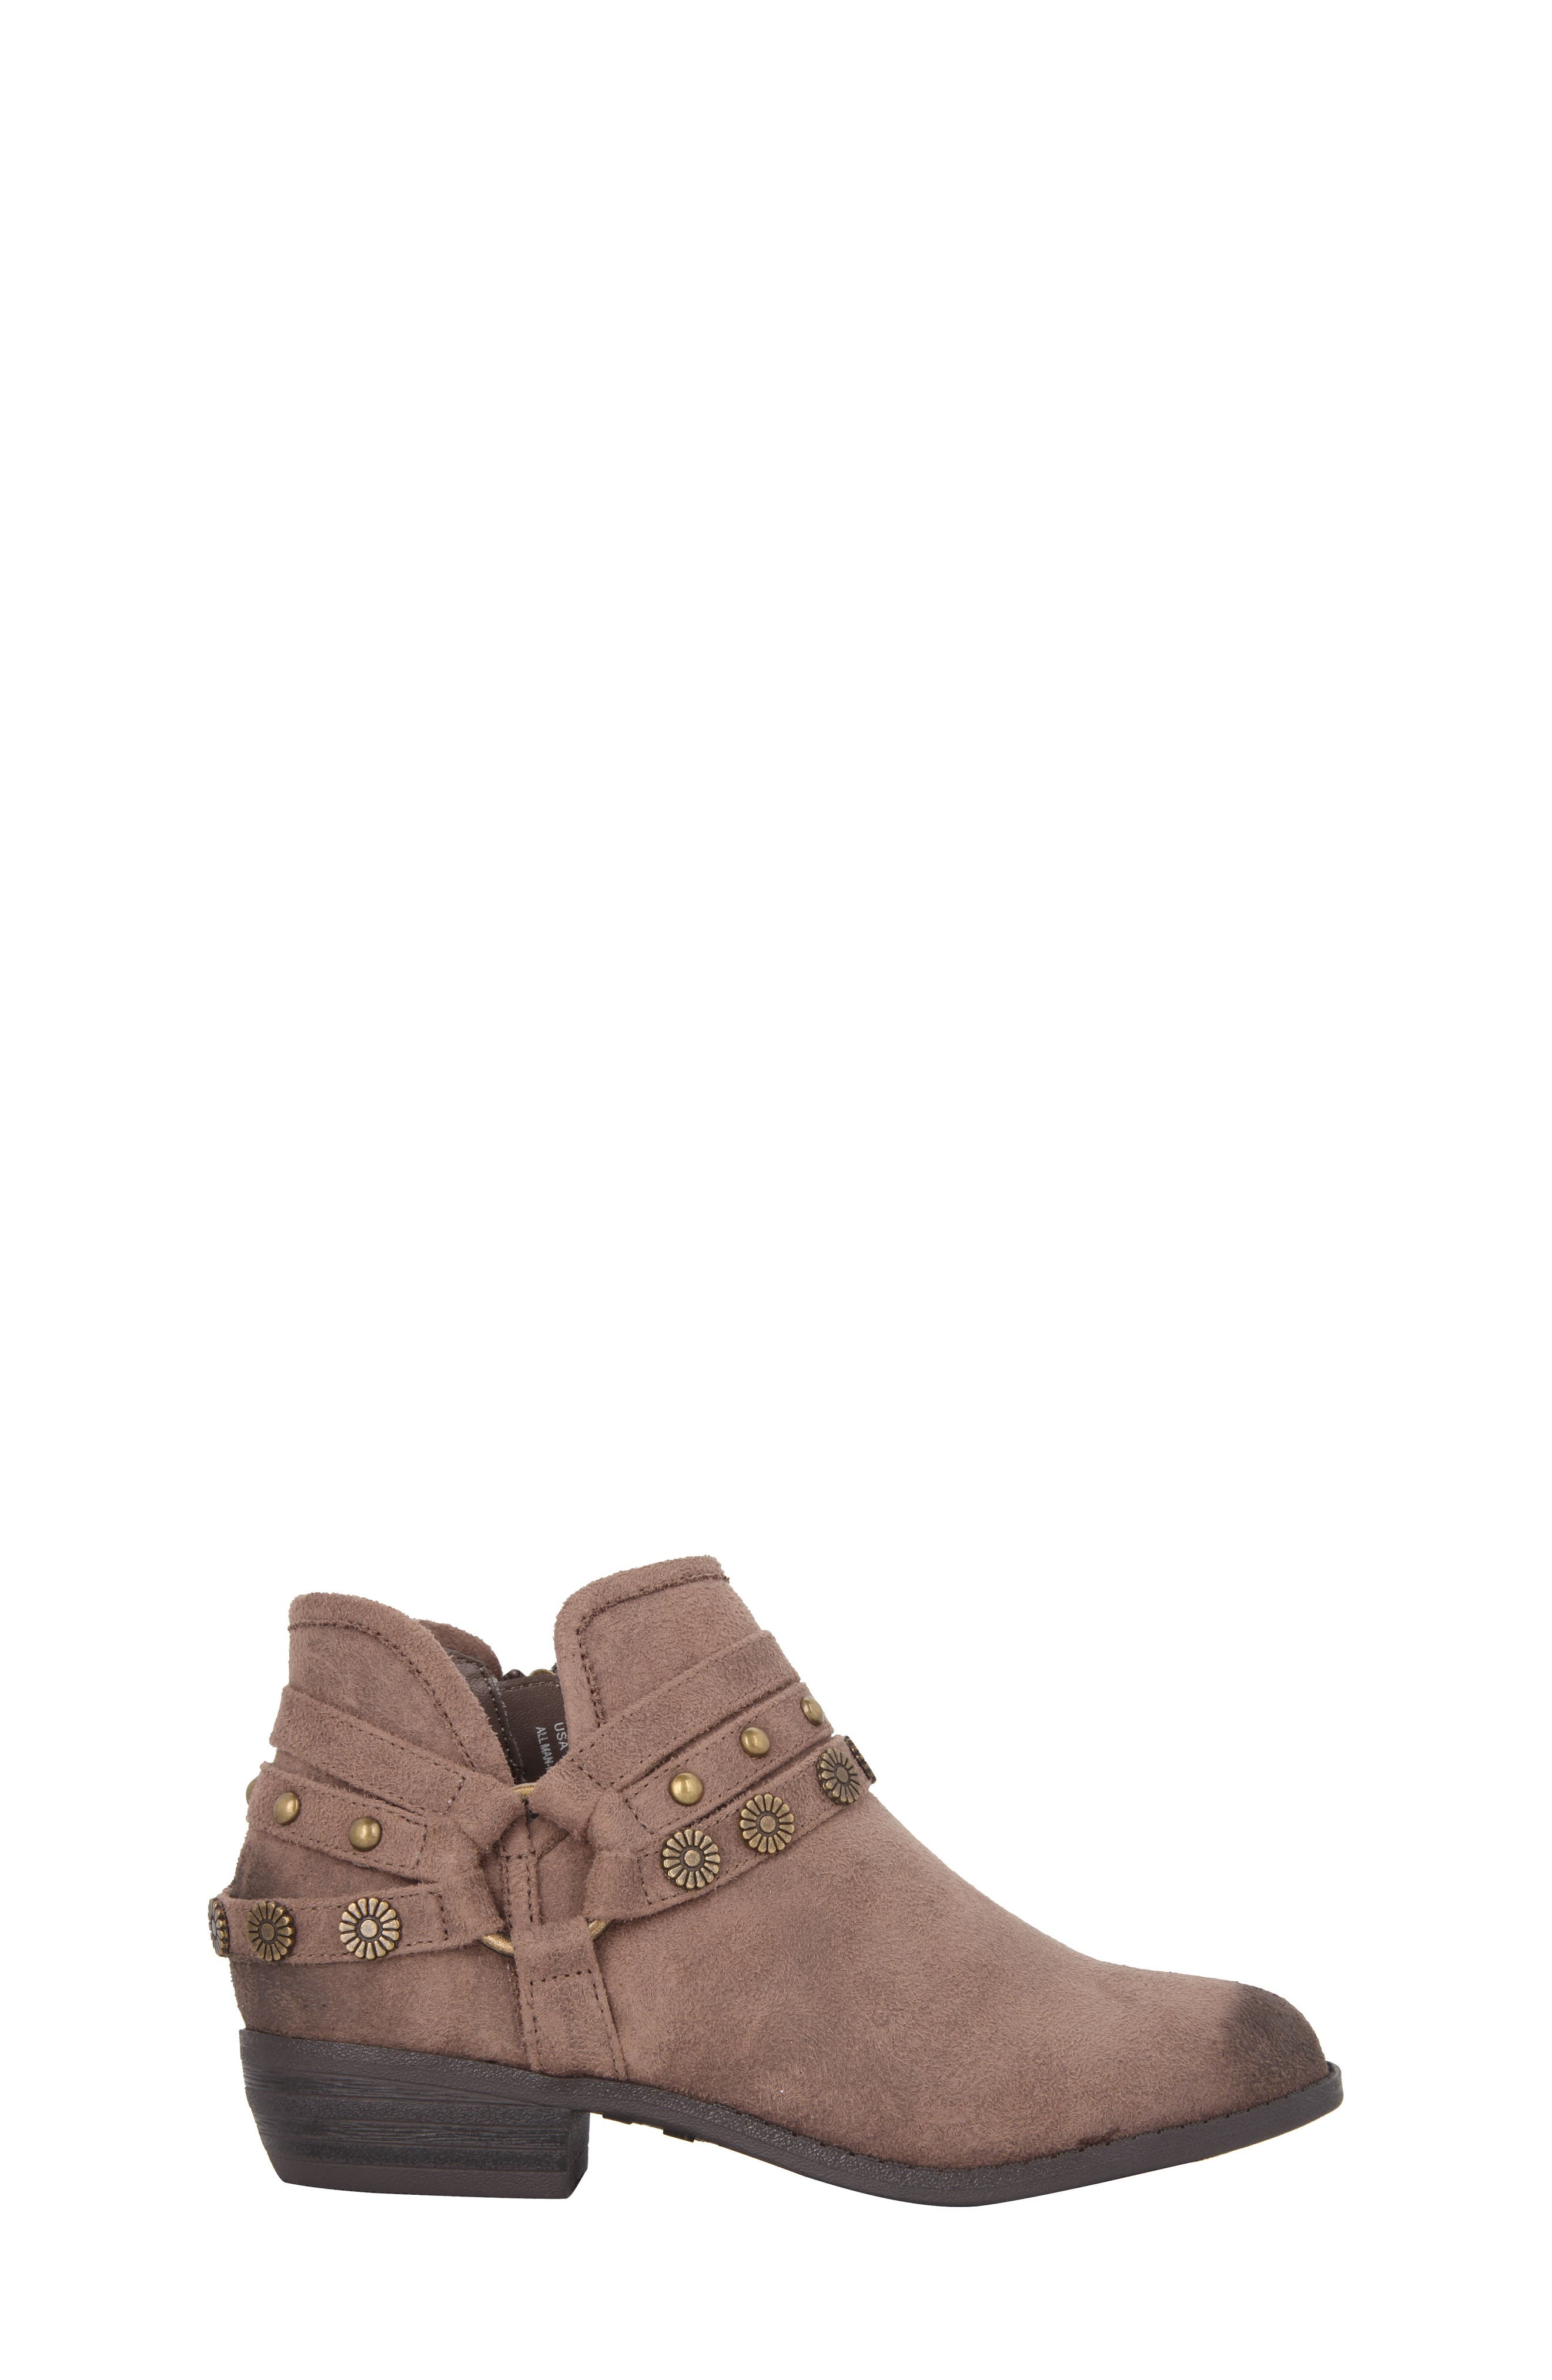 Zoe Strappy Low Bootie,                             Alternate thumbnail 6, color,